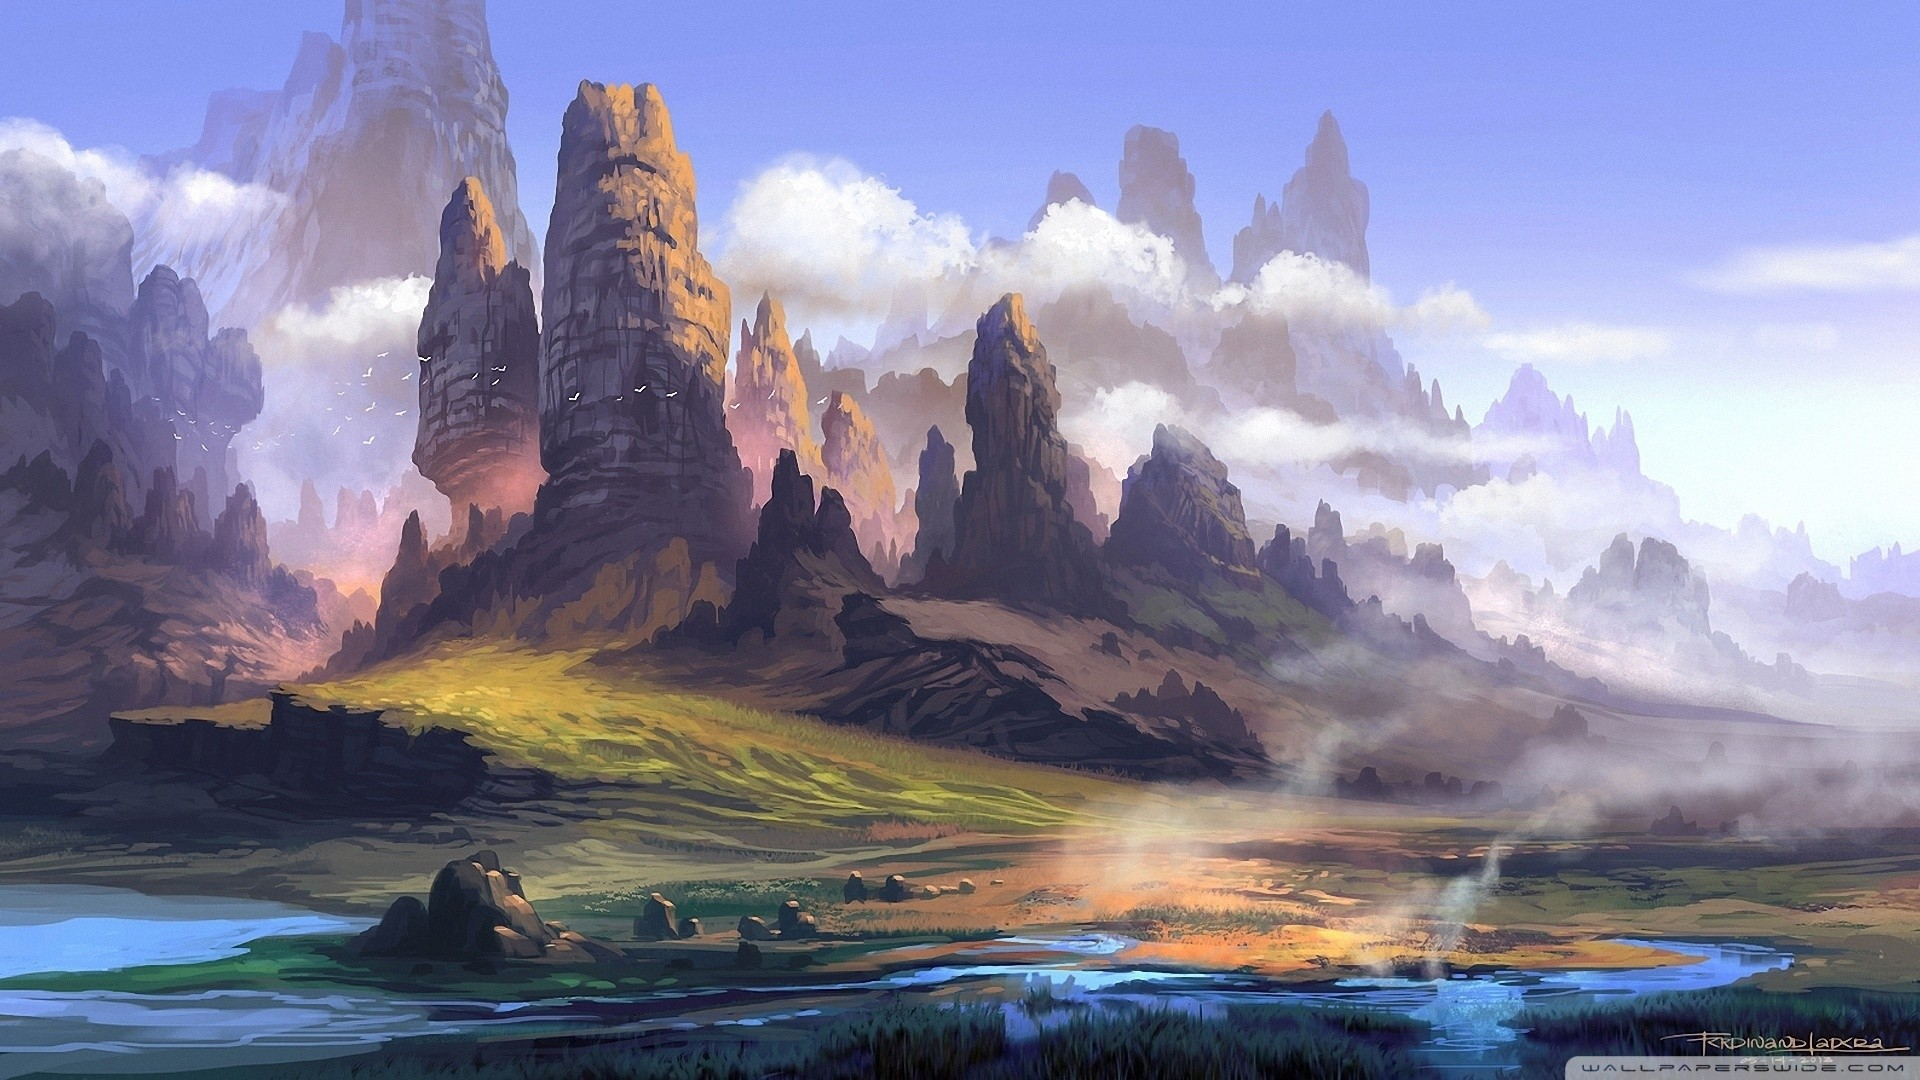 Res: 1920x1080, tags: chinese landscape painting wallpapers, landscape oil painting  wallpaper, landscape painting wallpaper, landscape painting wallpaper hd